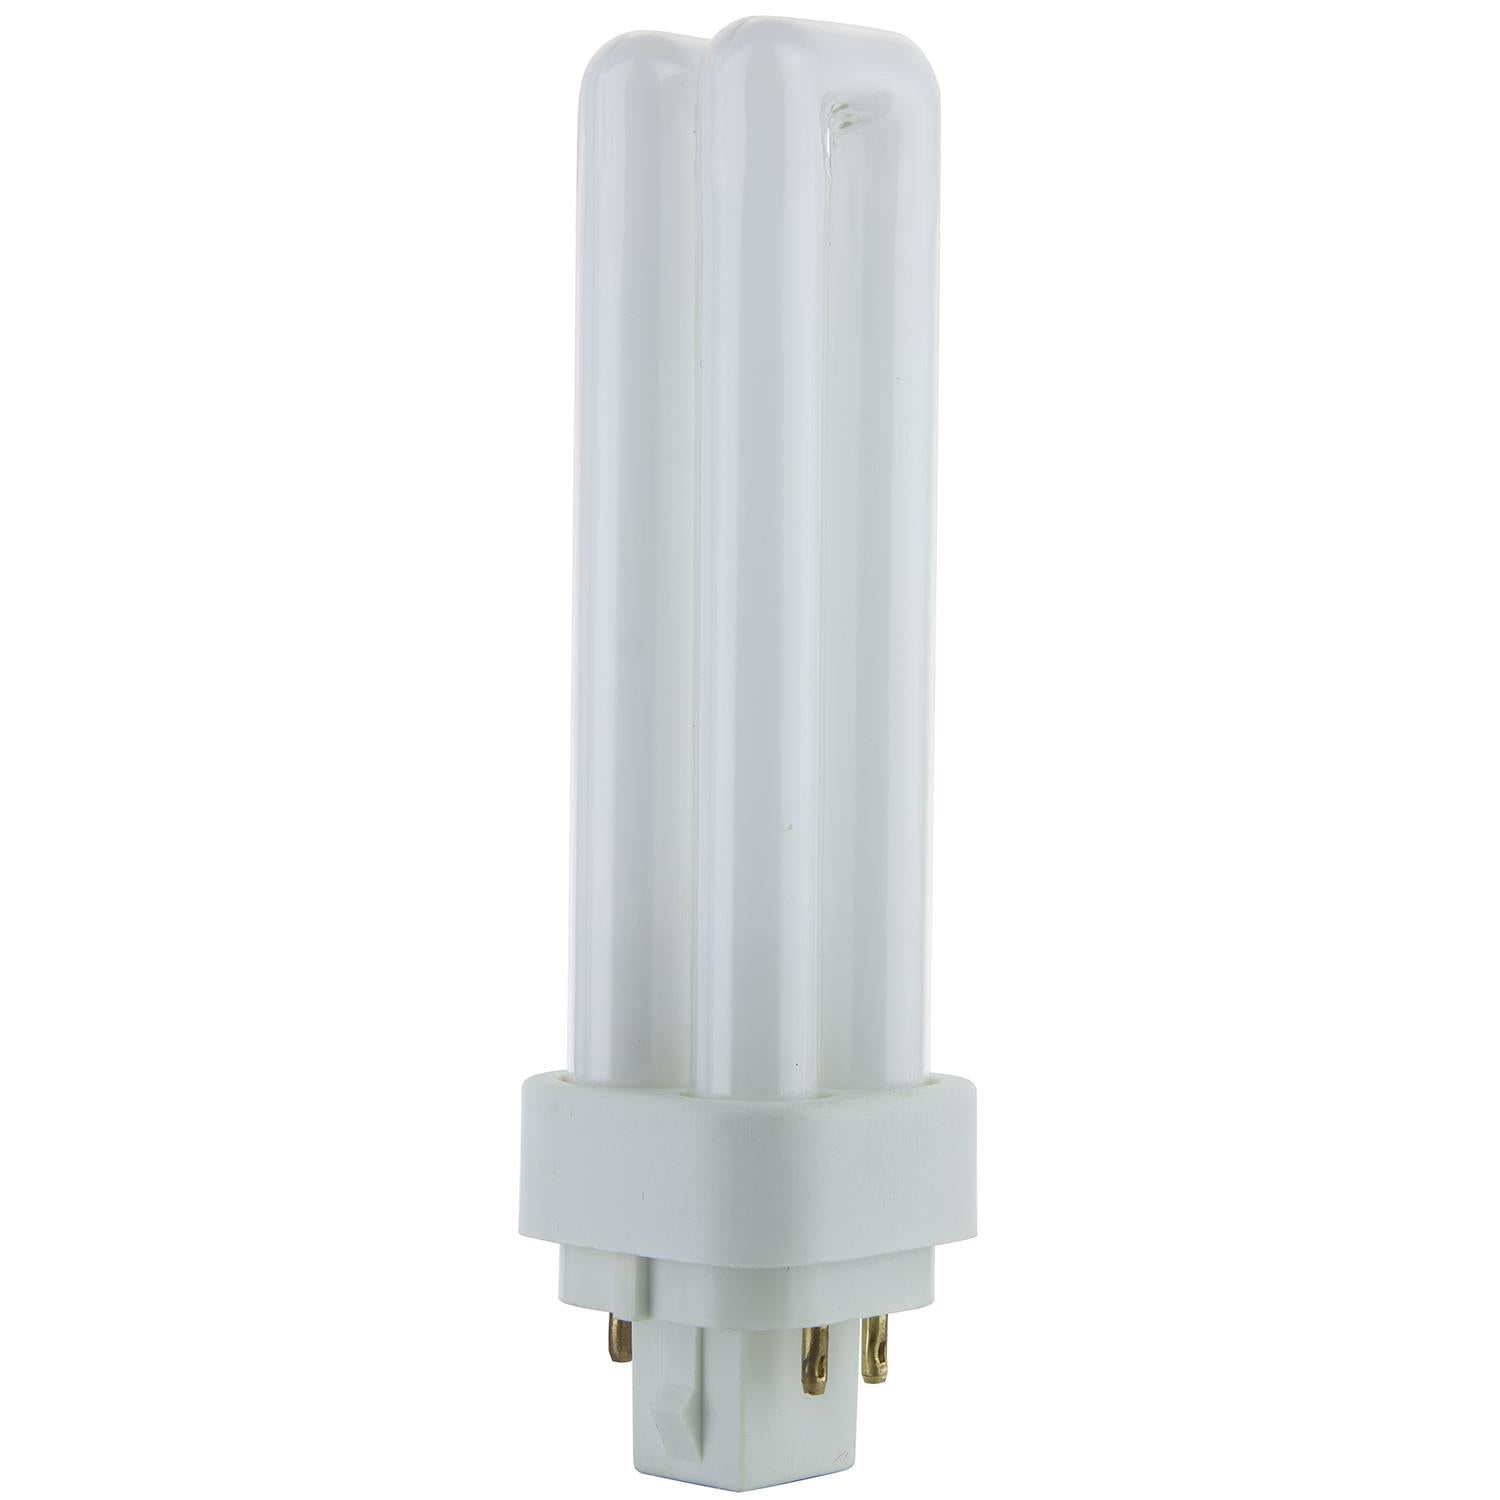 SUNLITE 13w G24q-1 PLD 4-Pin Double U-Shaped Twin Tube 5000K Super White Lamp